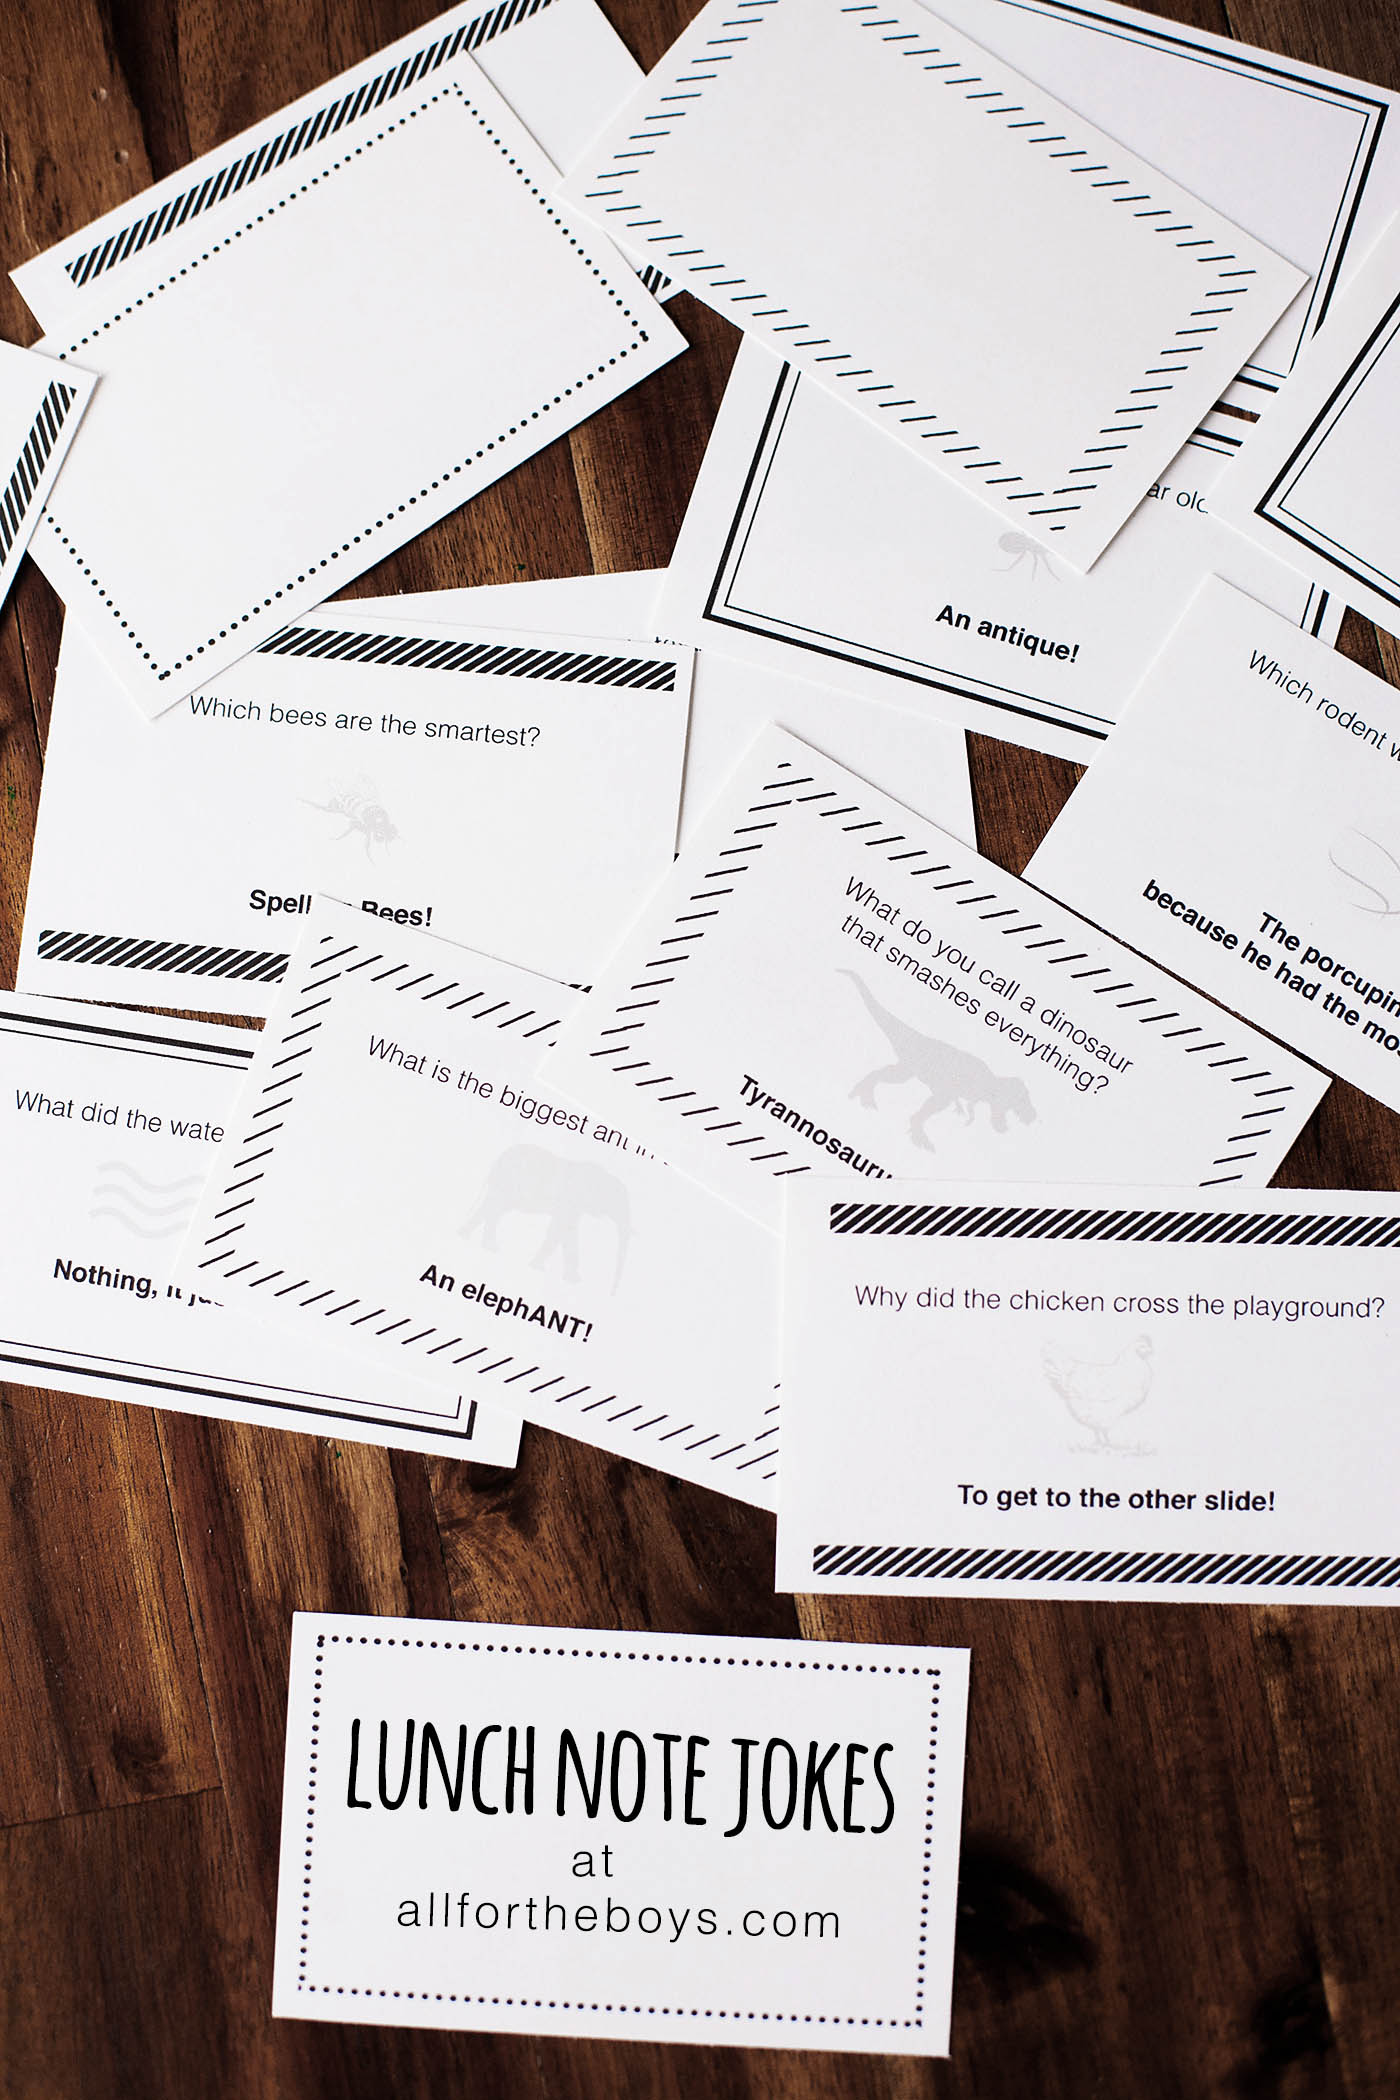 Free printable school lunch note jokes